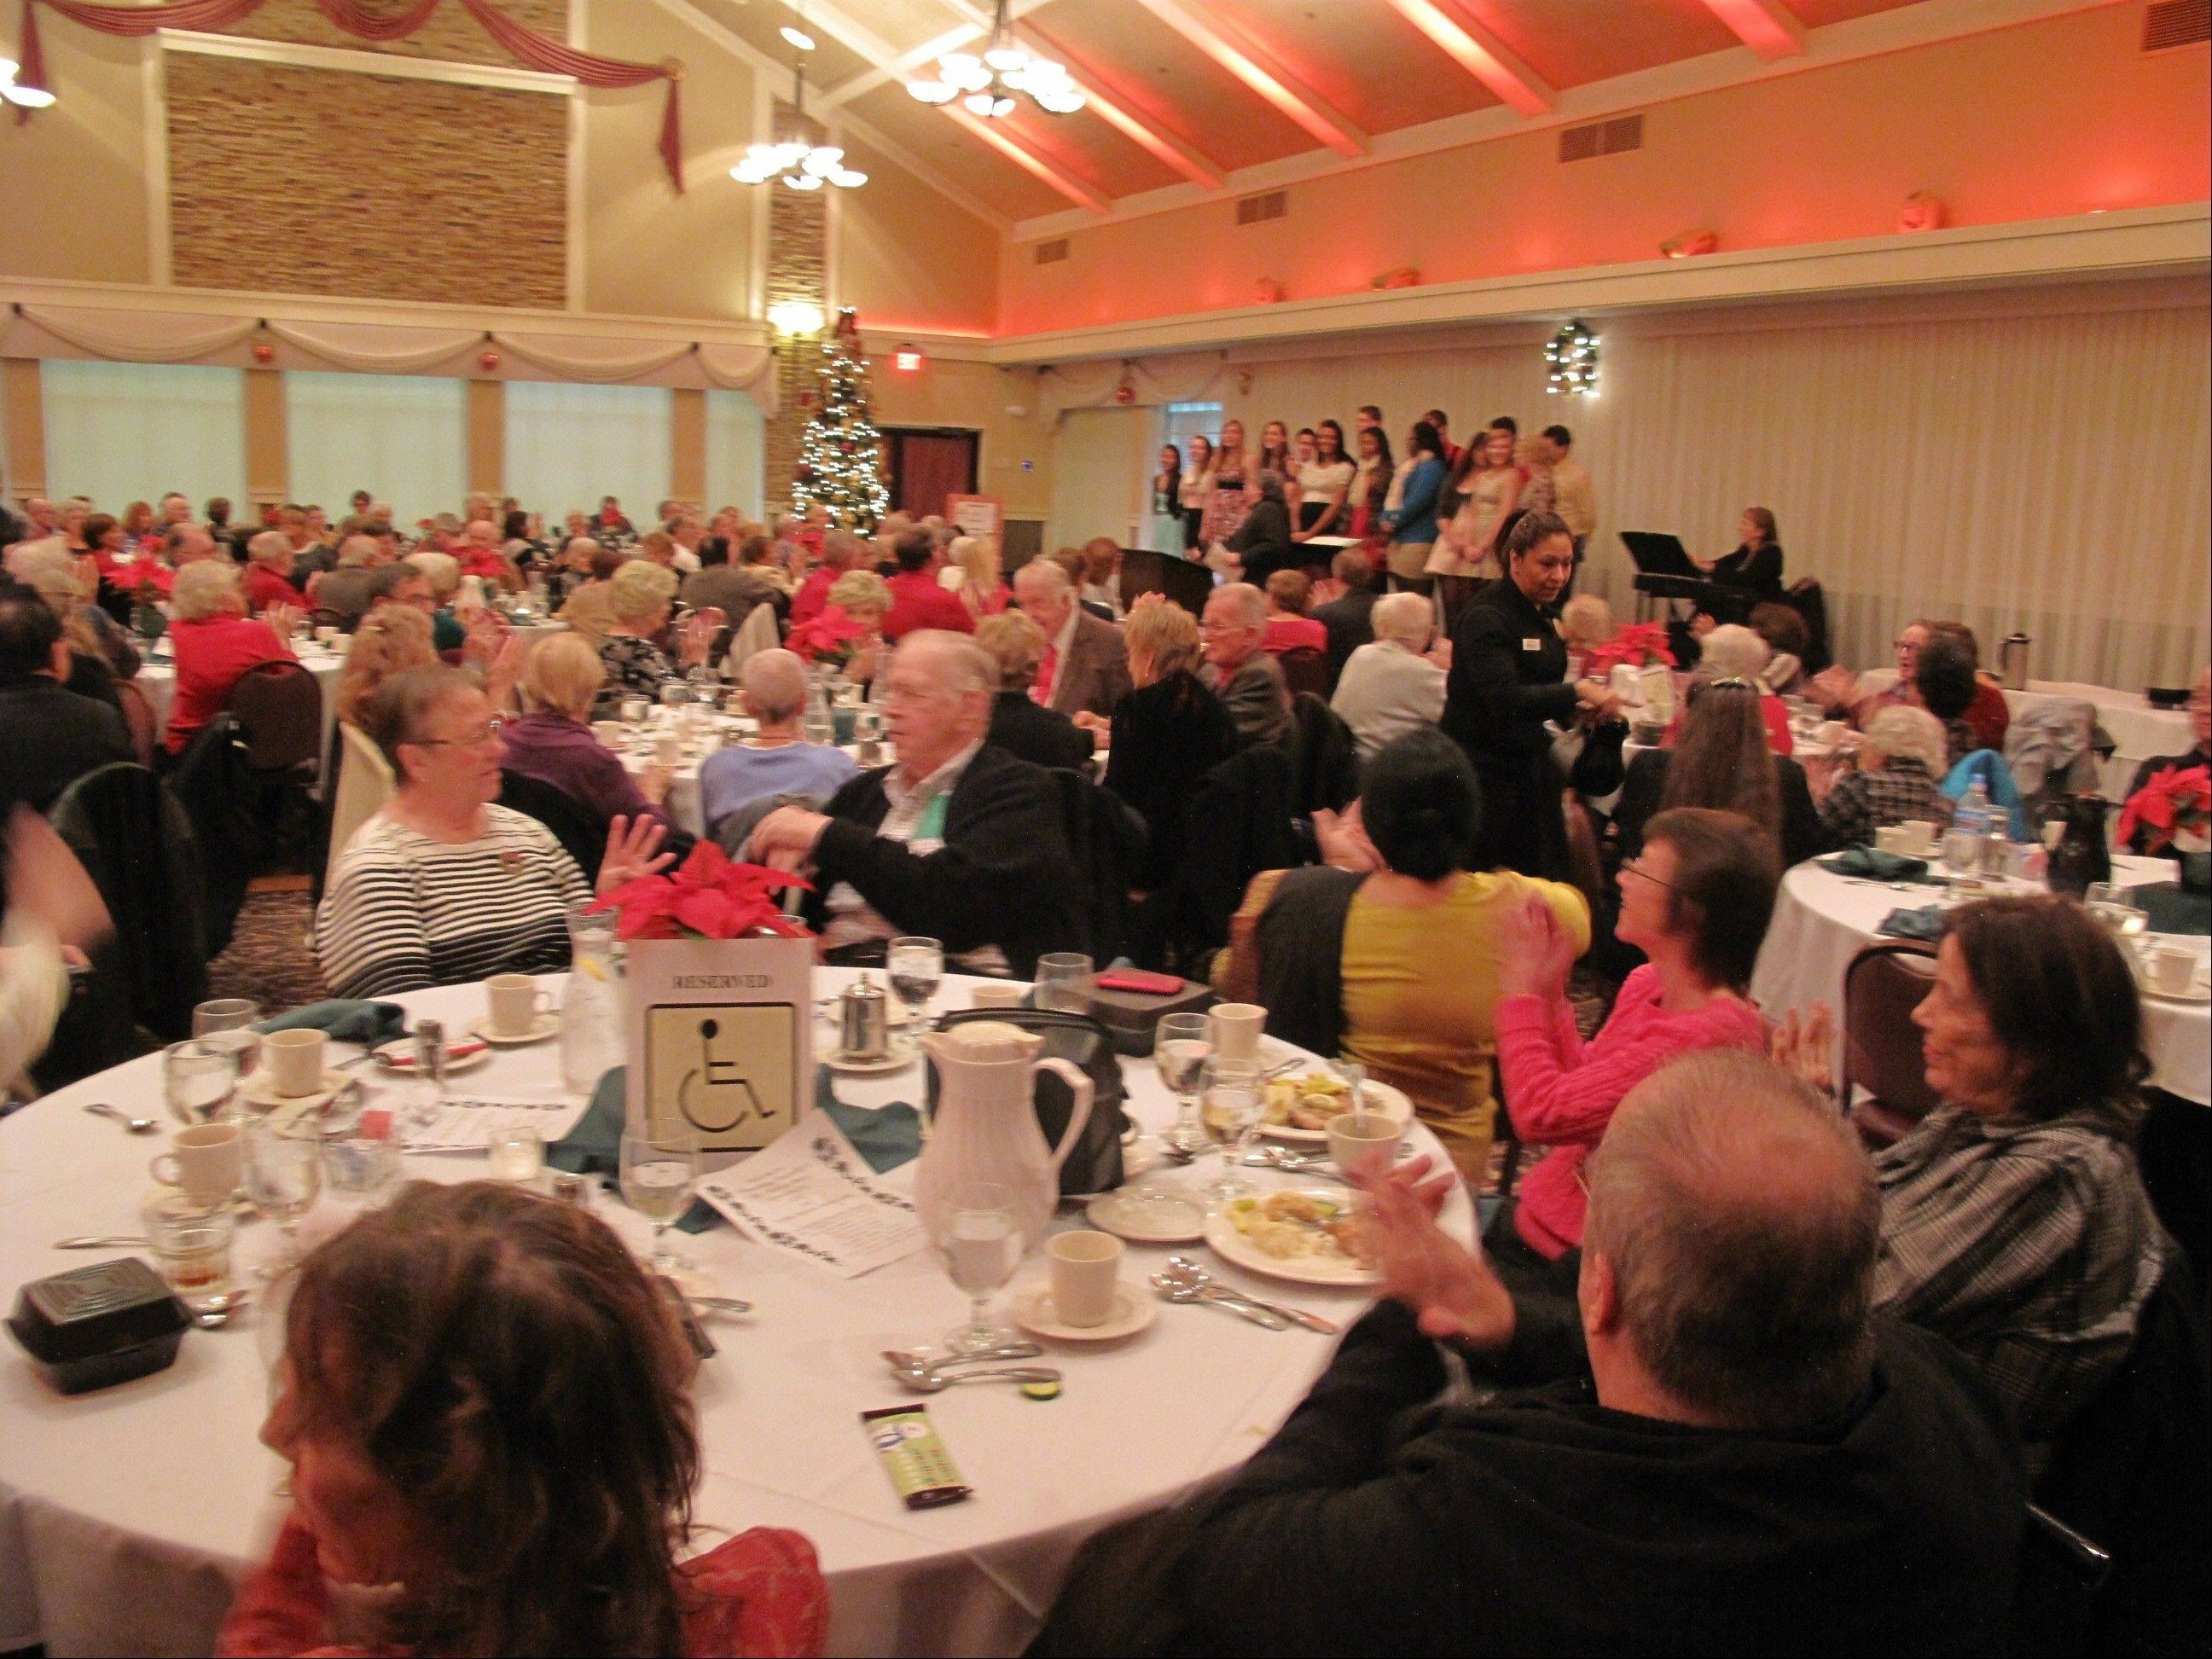 Attendees of the Schaumburg Township Senior and Disability Holiday Party enjoy a performance by the Schaumburg High School Choraliers Dec. 4 at Chandler's Chophouse in Schaumburg.